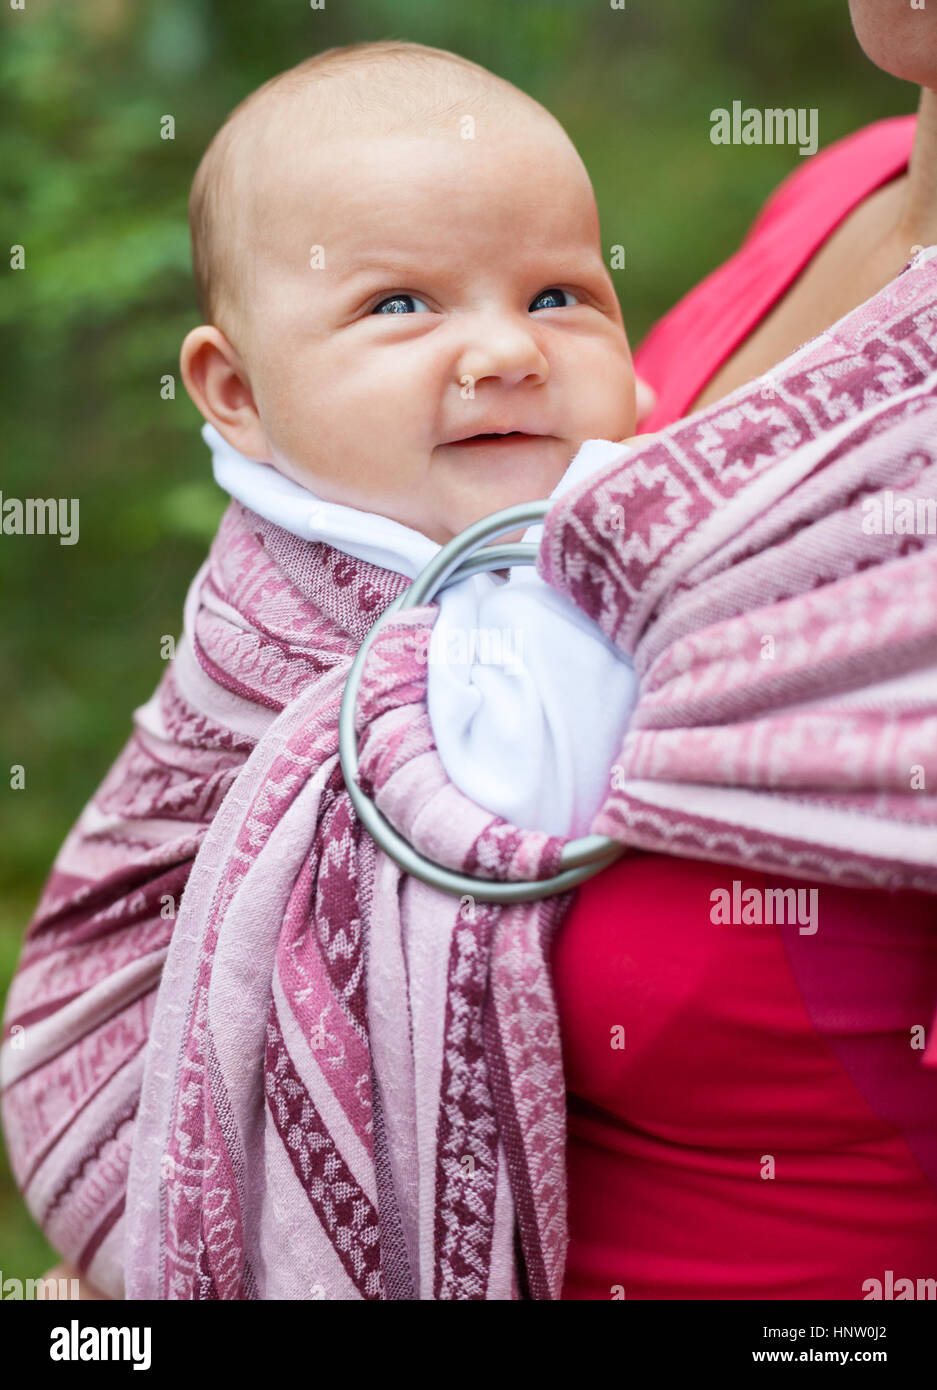 Mother carrying her child in a baby sling - Stock Image